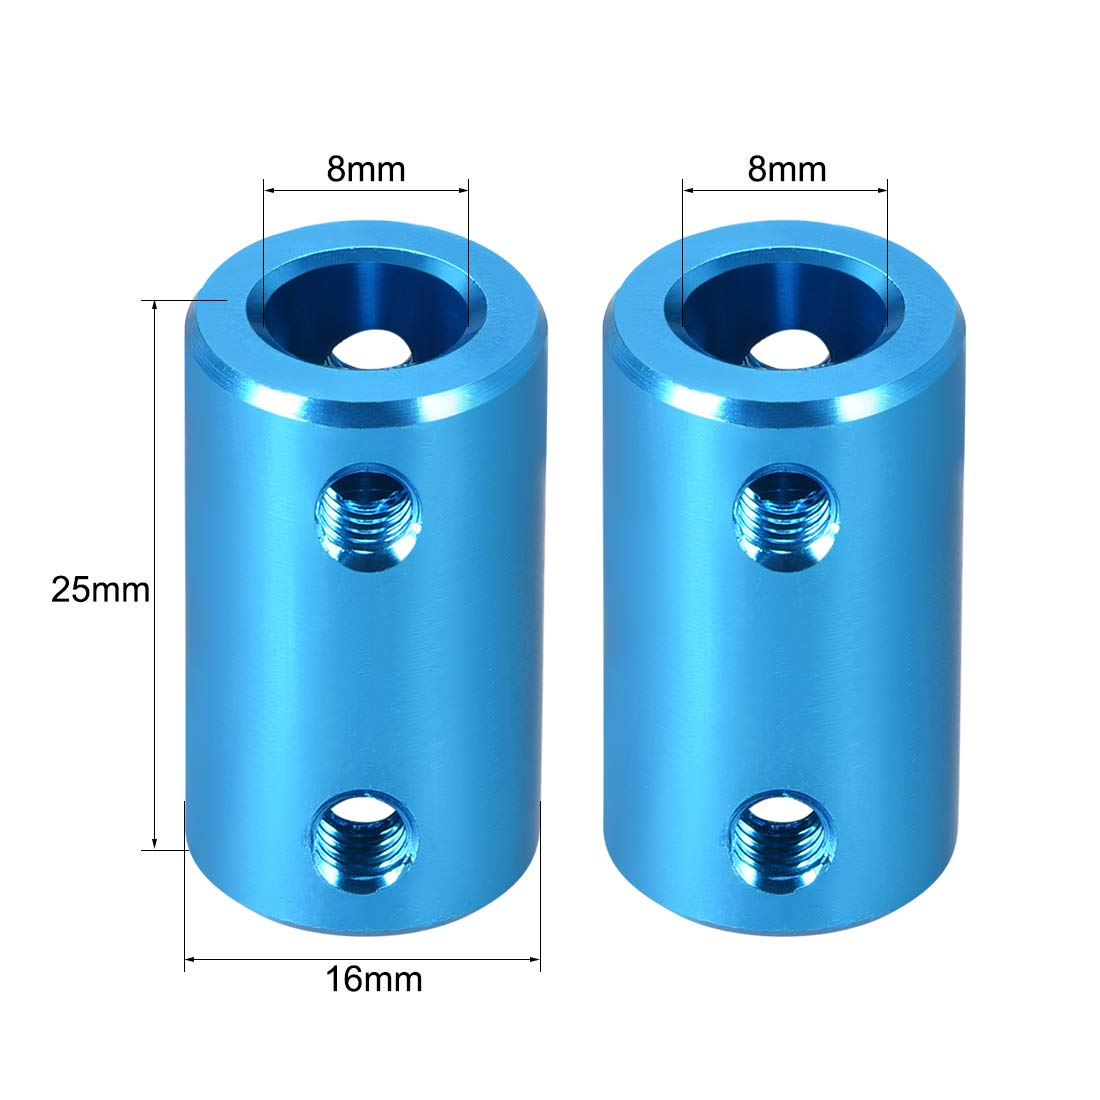 uxcell Shaft Coupling 8mm to 8mm L25xD14 Rigid Stepper Motor Wheel Coupler Connect Blue